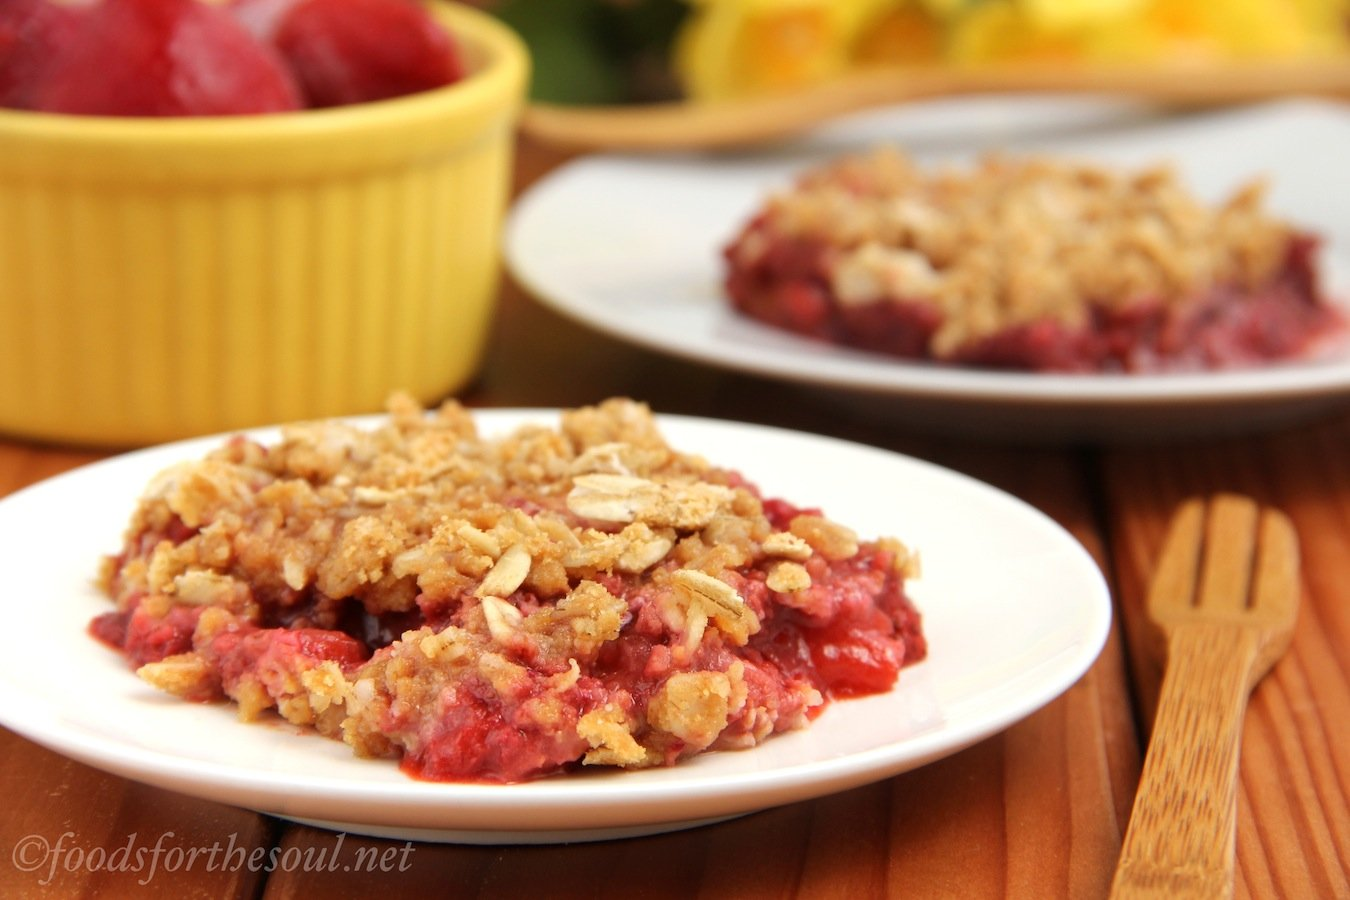 Strawberry Peanut Butter Crumble | by Foods for the Soul {foodsforthesoul.net}